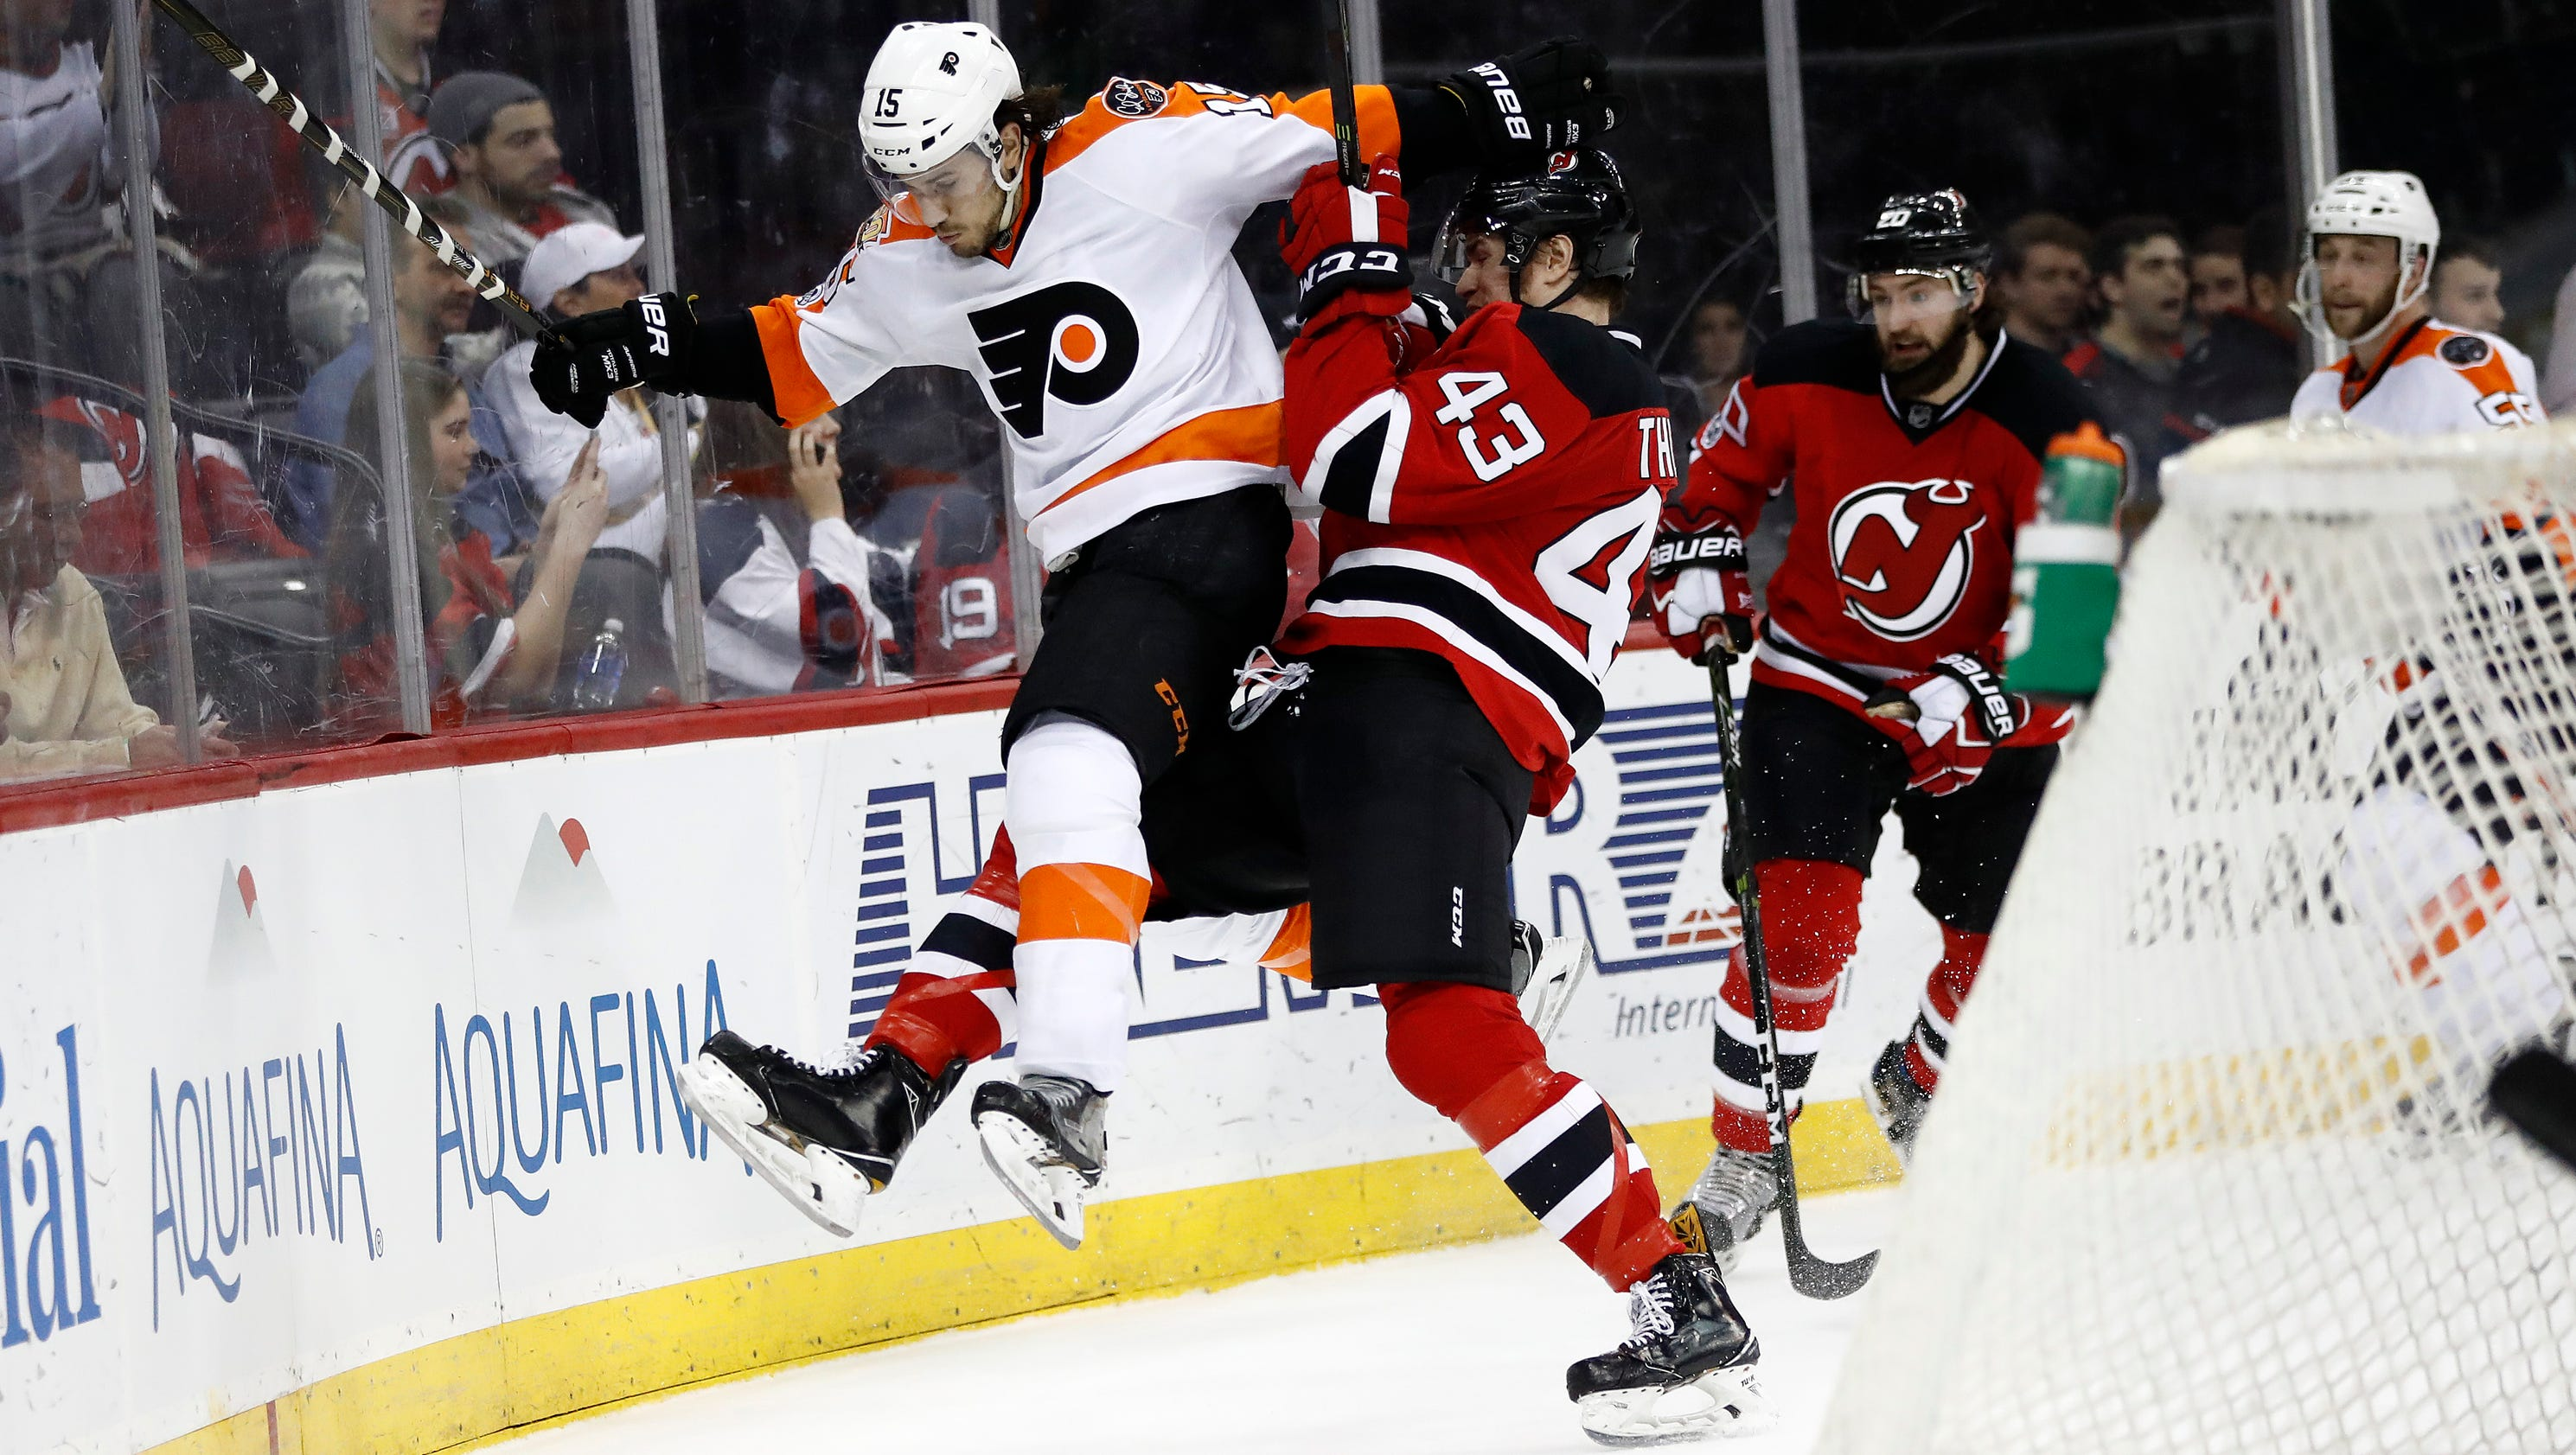 636269491780667949-flyers-devils-hockey-njha-3-